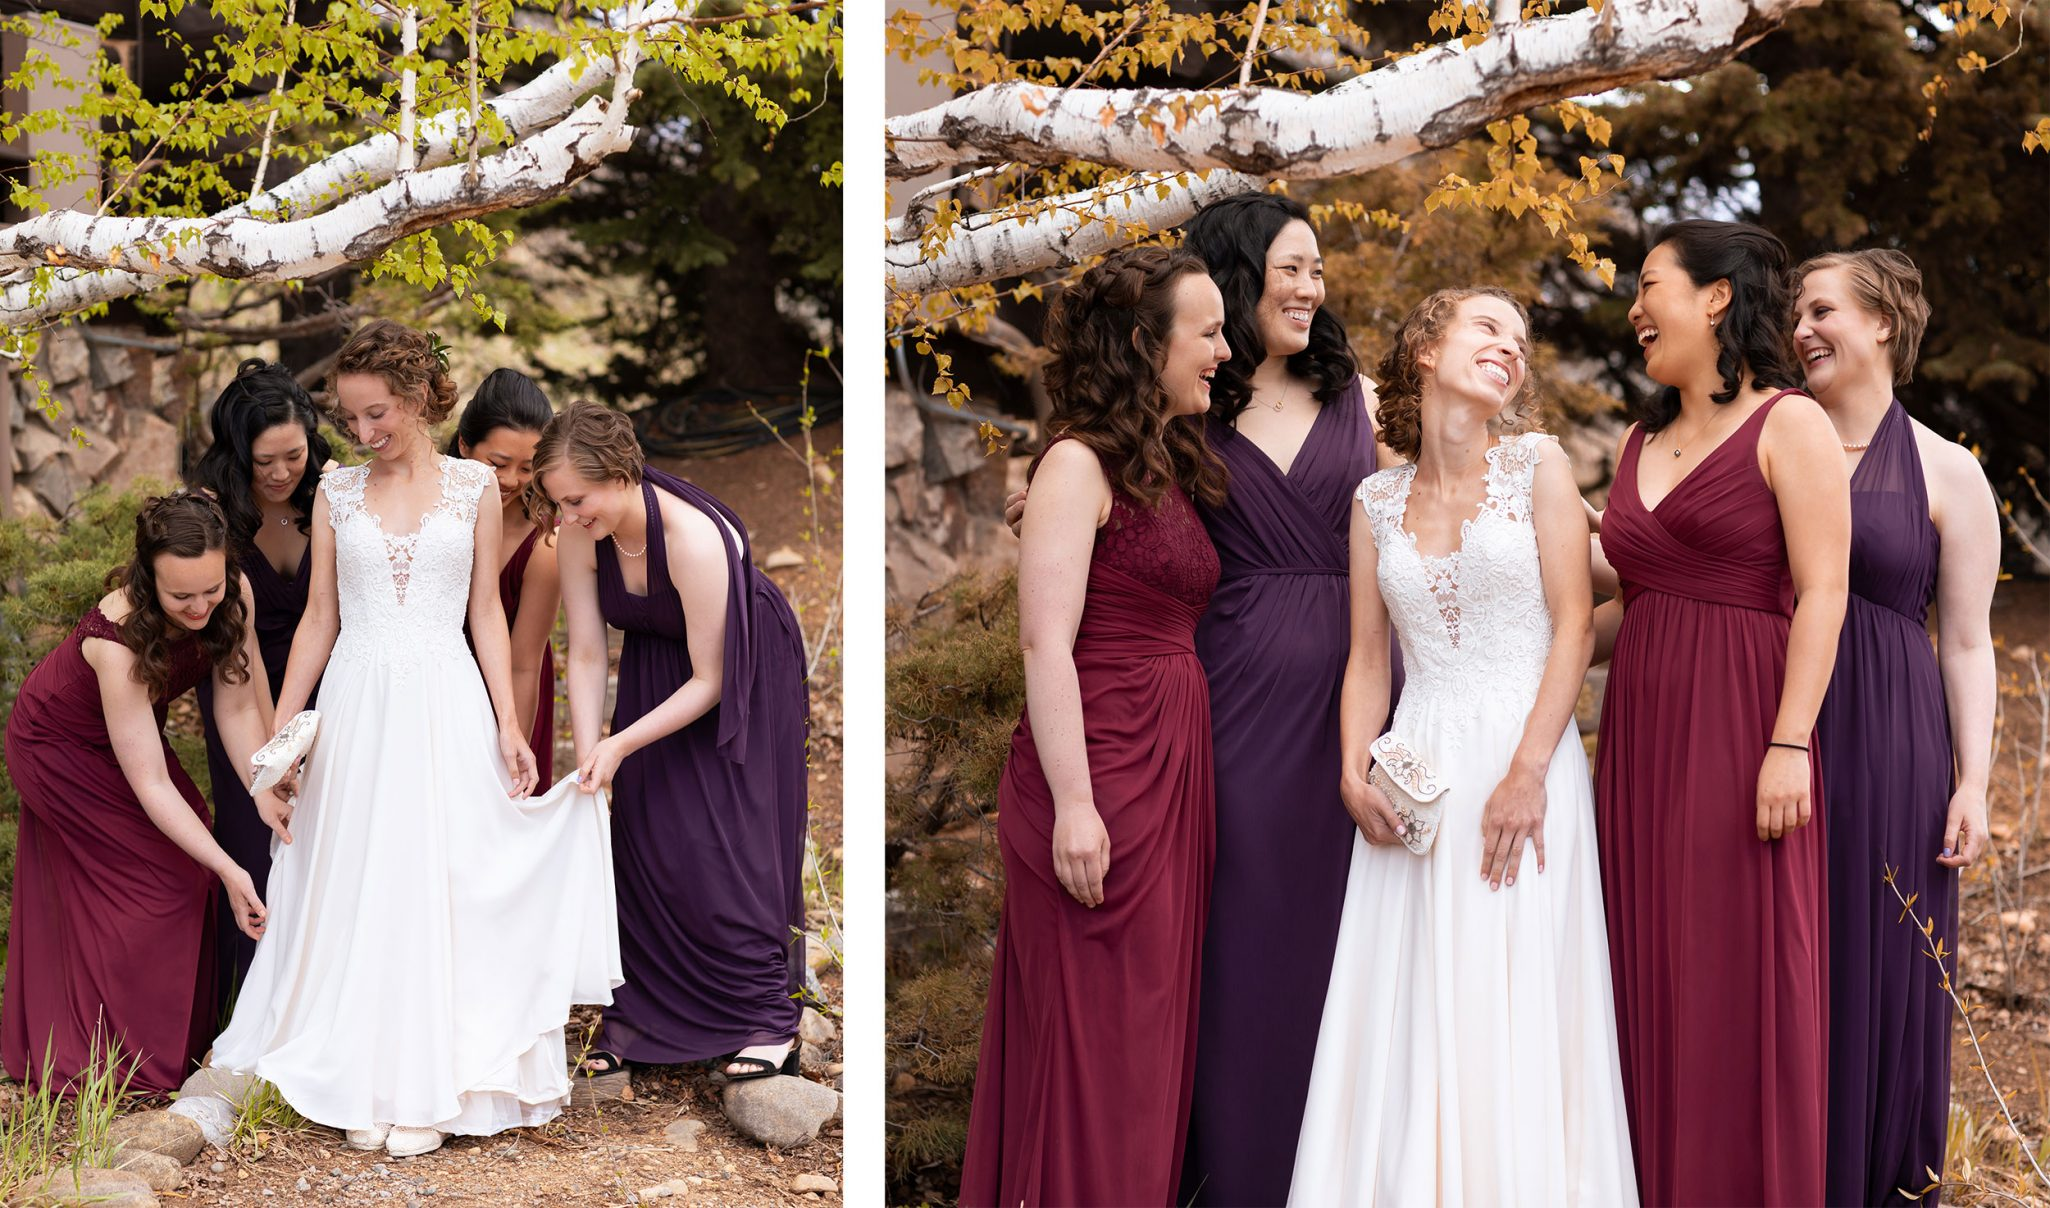 Bridesmaids in plum and wine